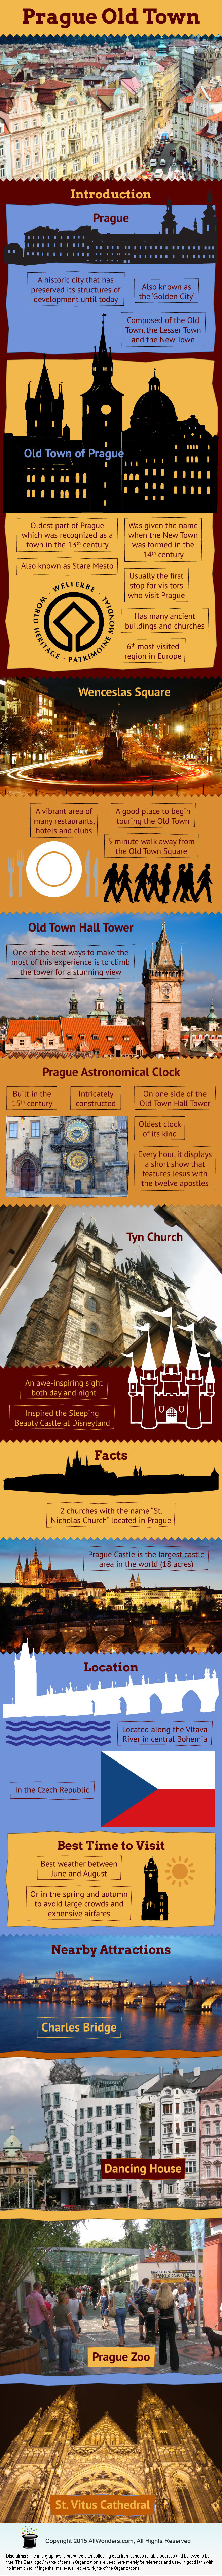 Prague Old Town - Facts & Infographic